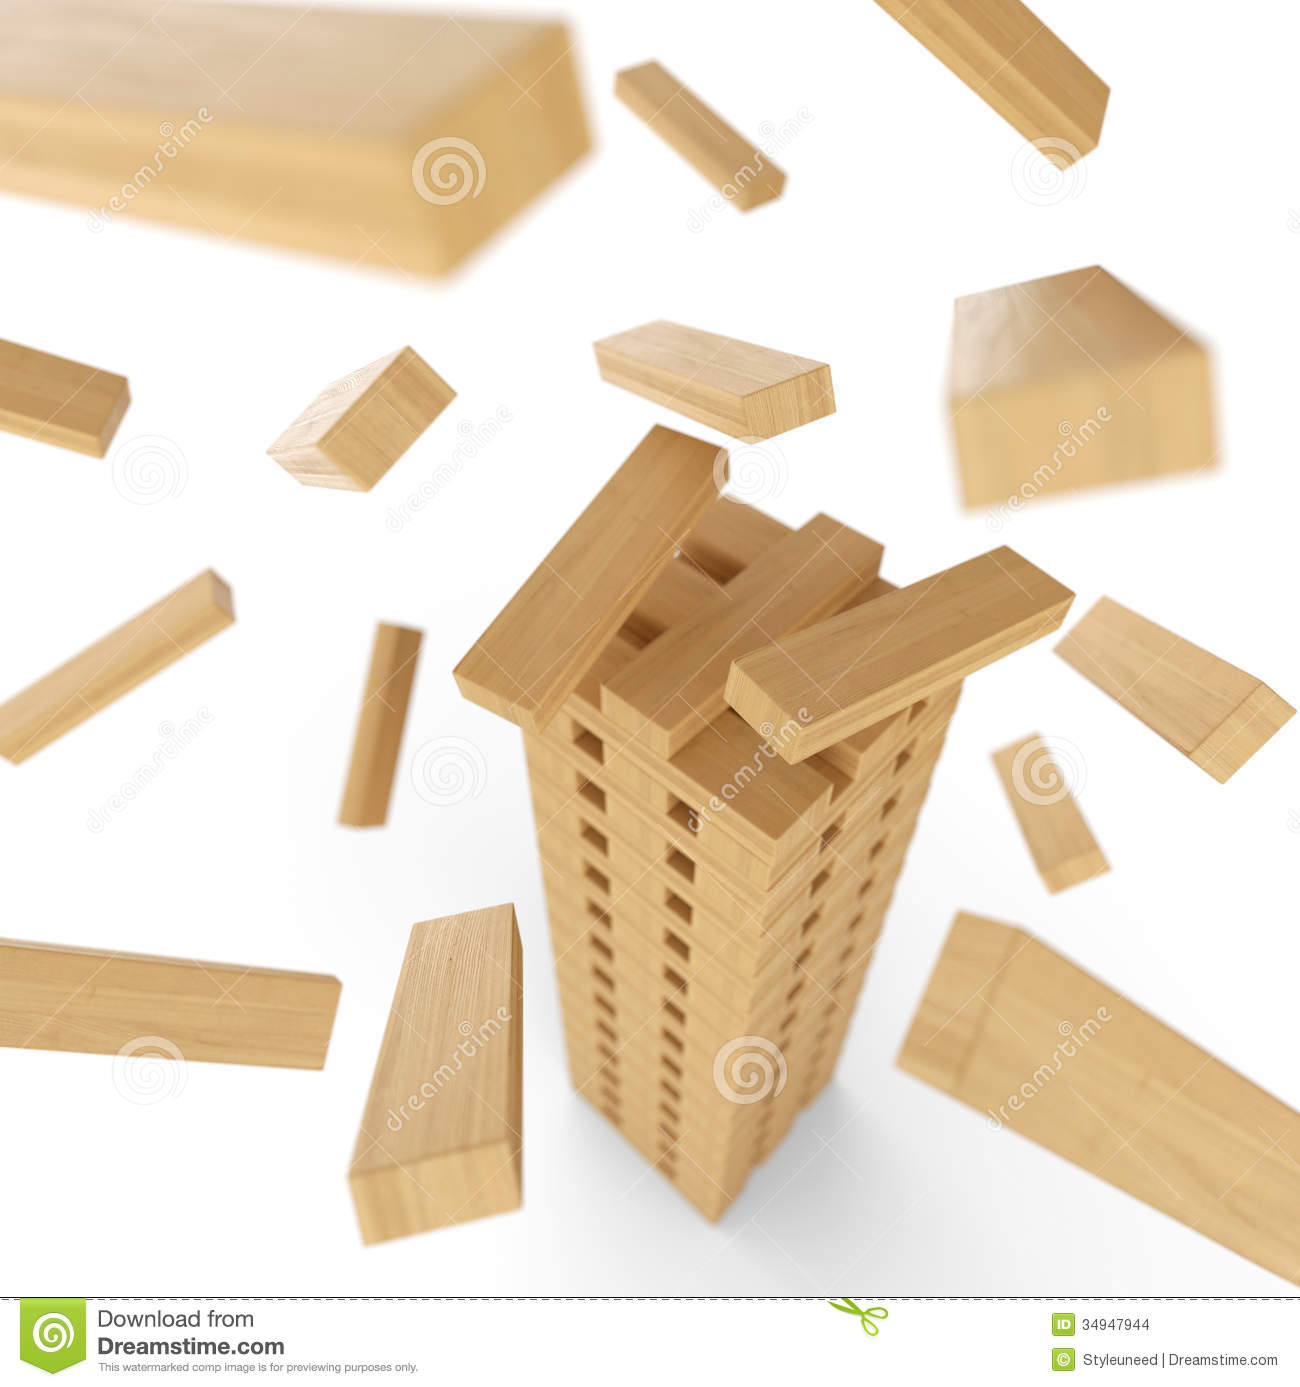 tower of wood blocks stock photo image of rise rectangular 34947944. Black Bedroom Furniture Sets. Home Design Ideas